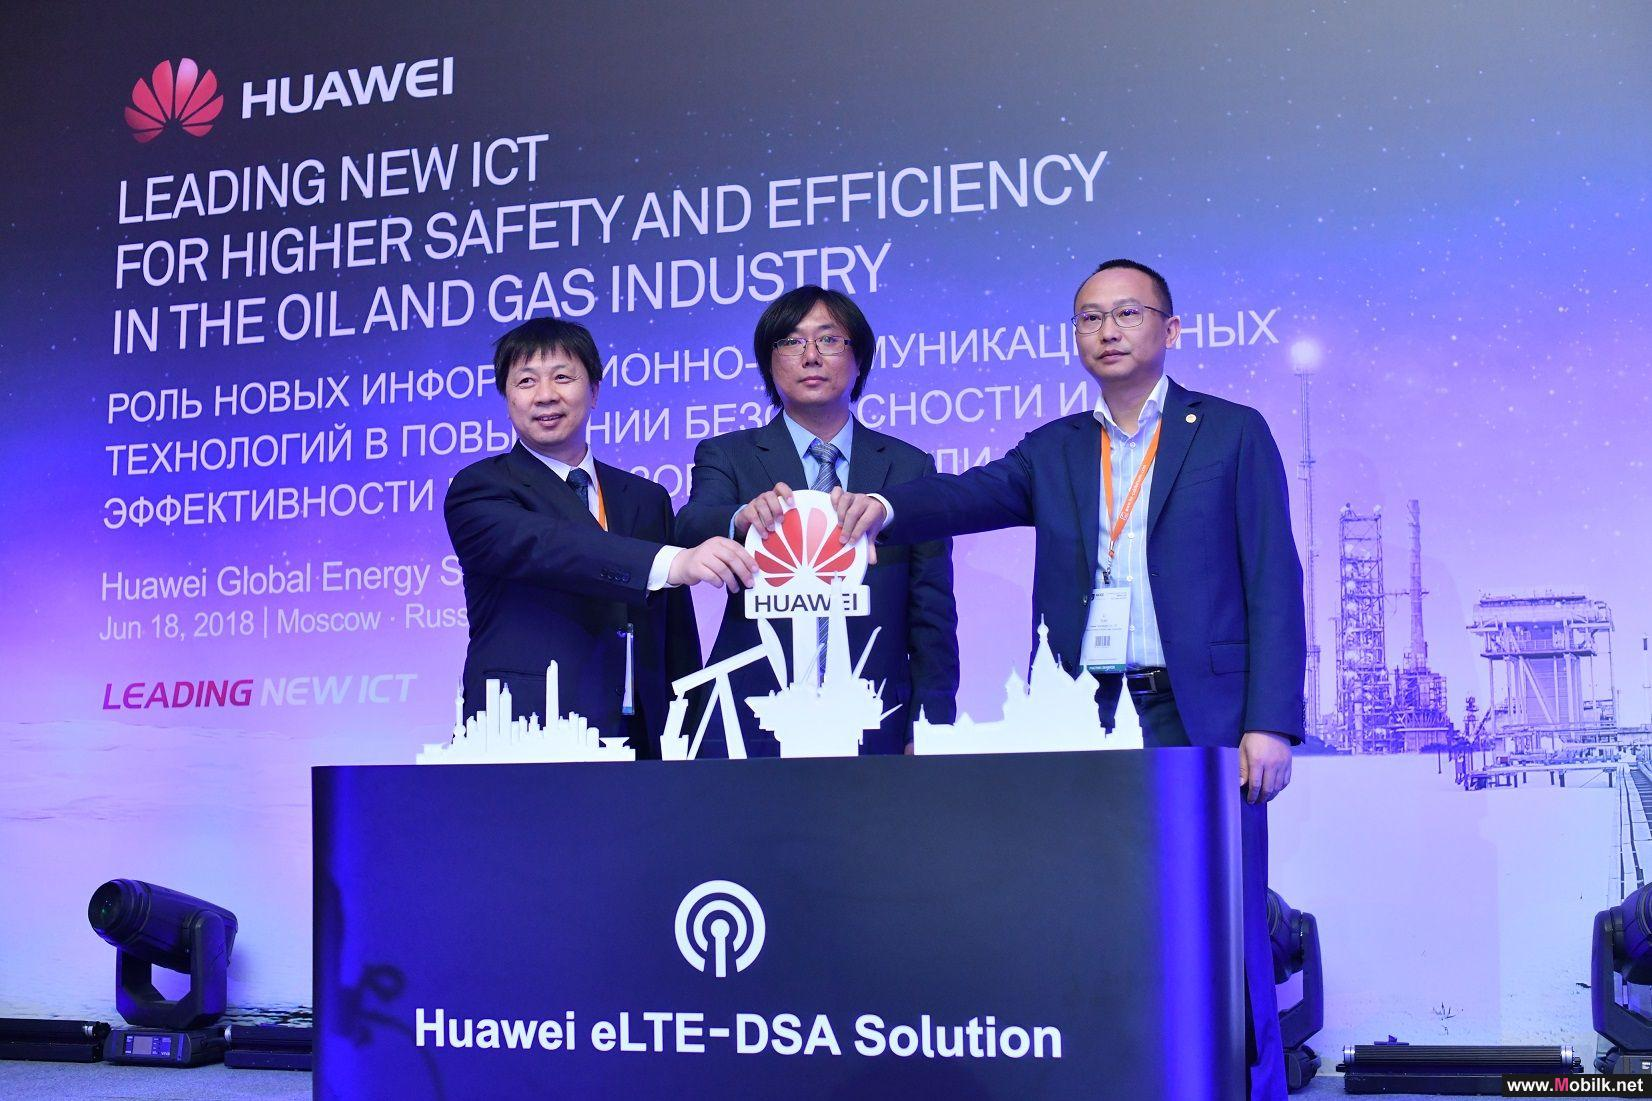 Huawei Unveils eLTE-DSA Solution to Help the Oil & Gas Industry Build Energy IoT